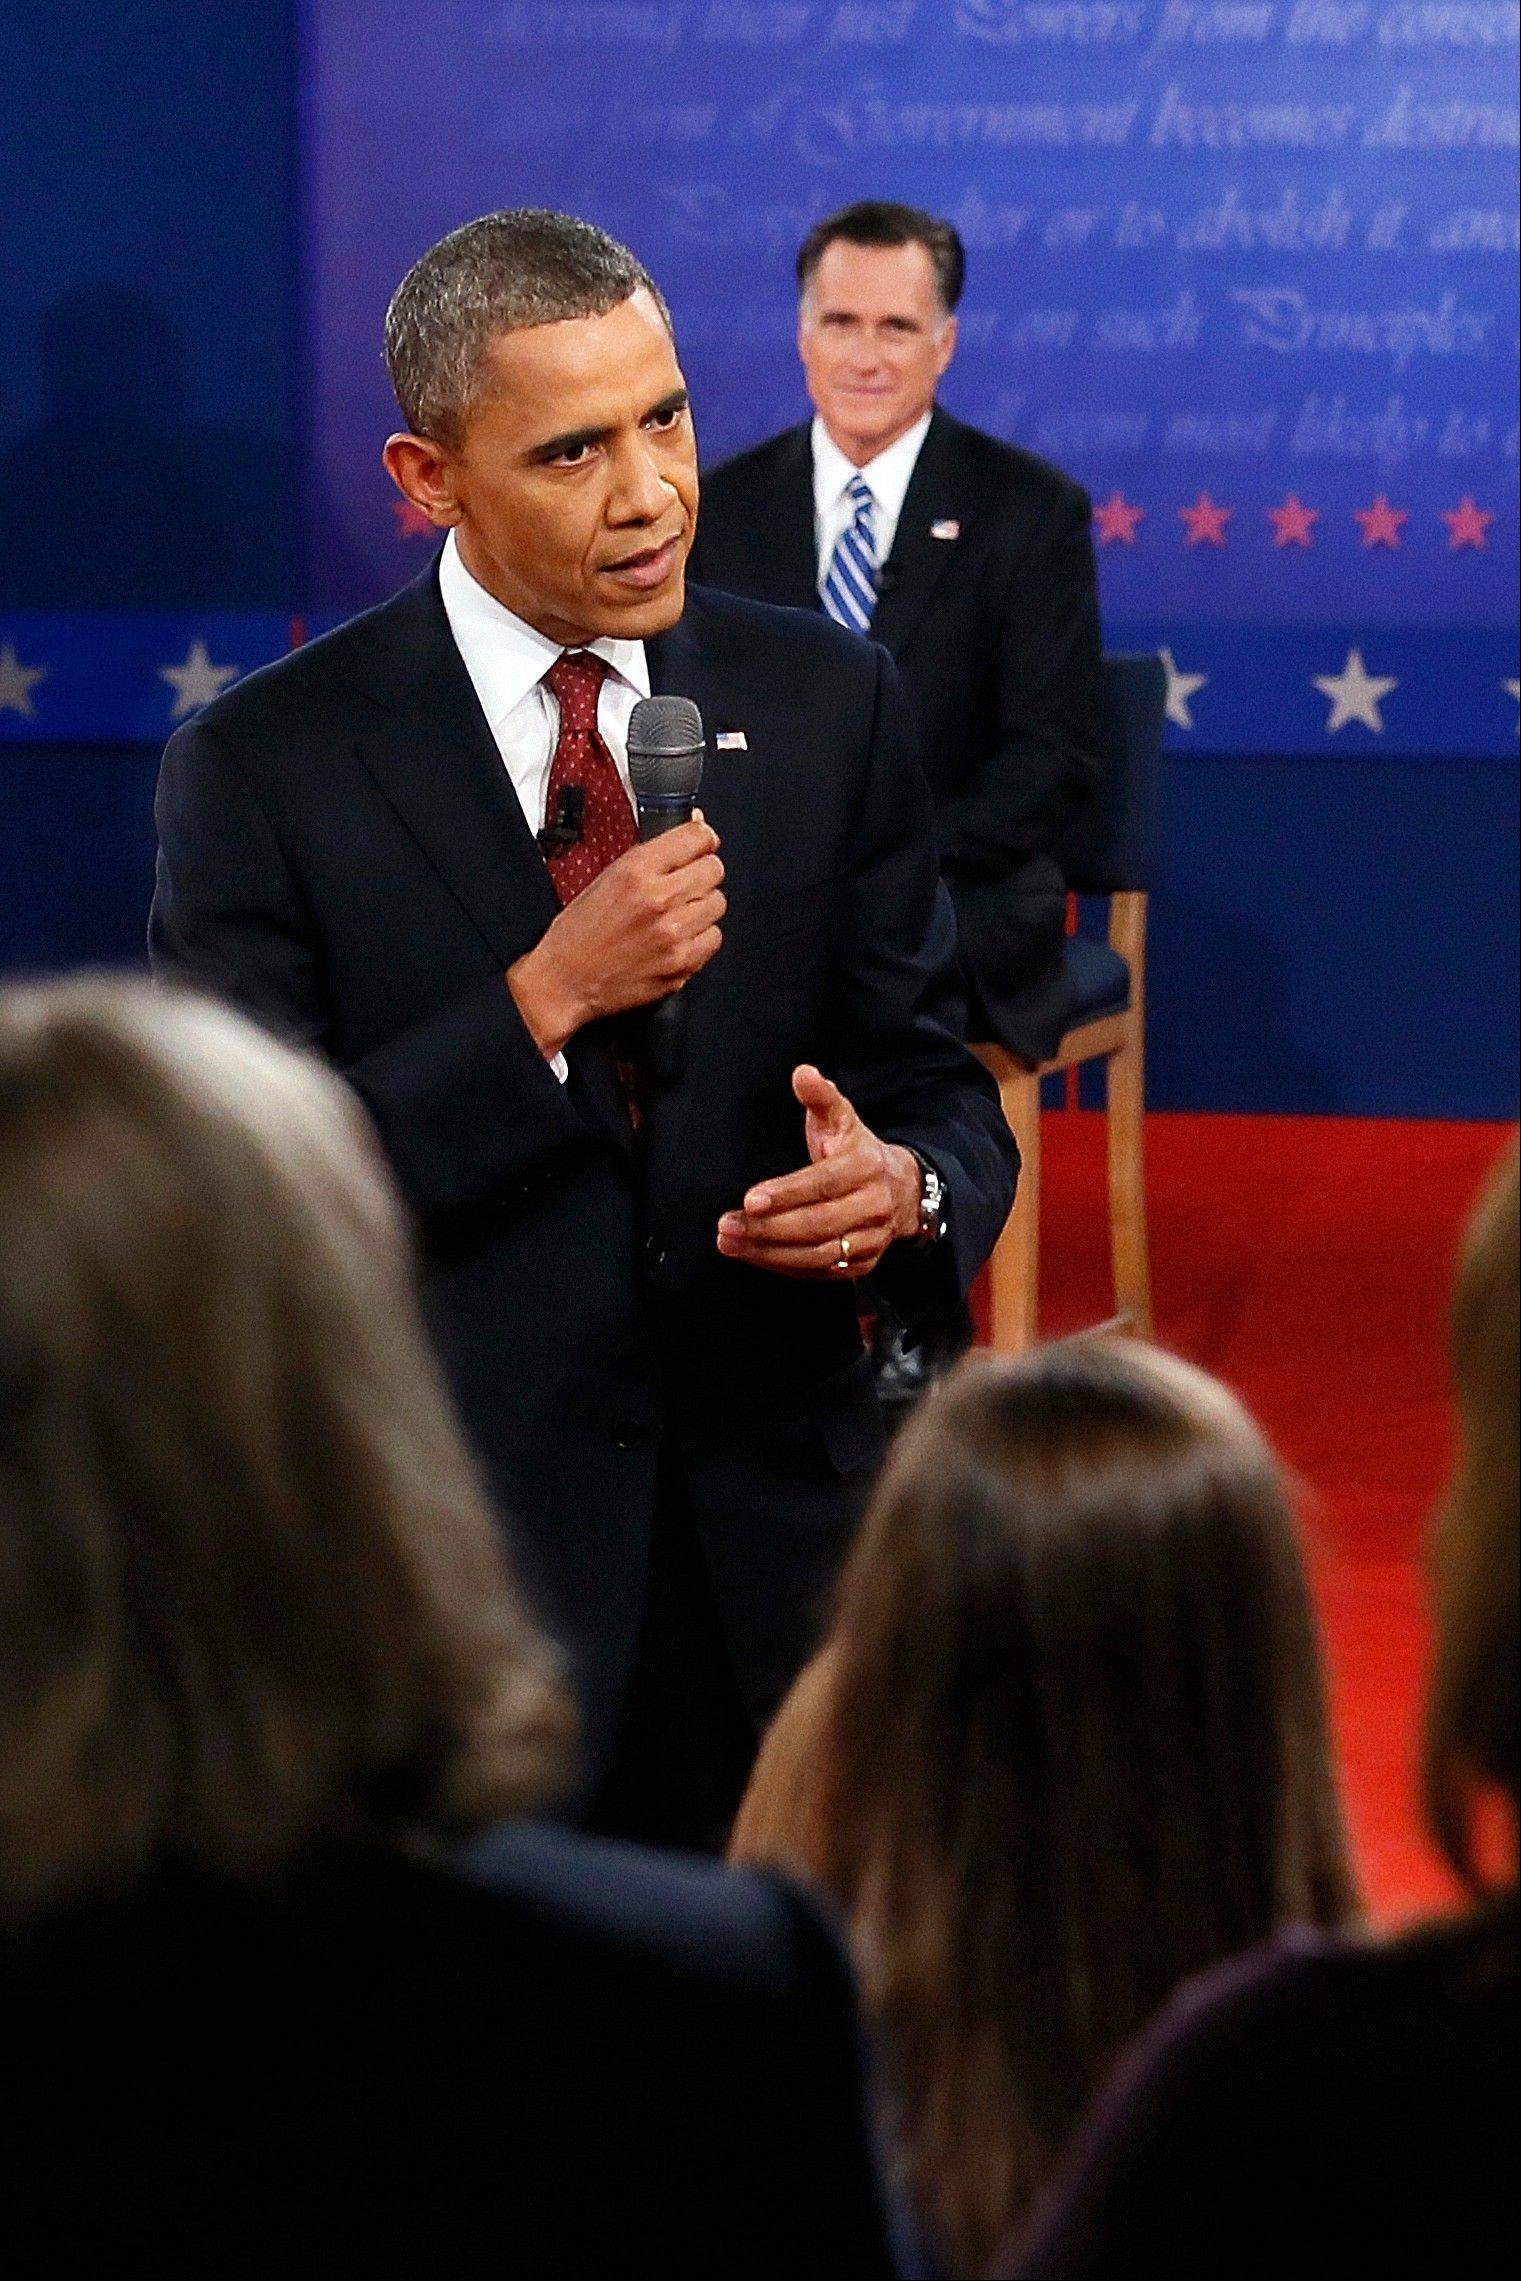 President Barack Obama answers a question as Republican presidential nominee Mitt Romney listens during the second presidential debate at Hofstra University, Tuesday, Oct. 16, 2012, in Hempstead, N.Y.